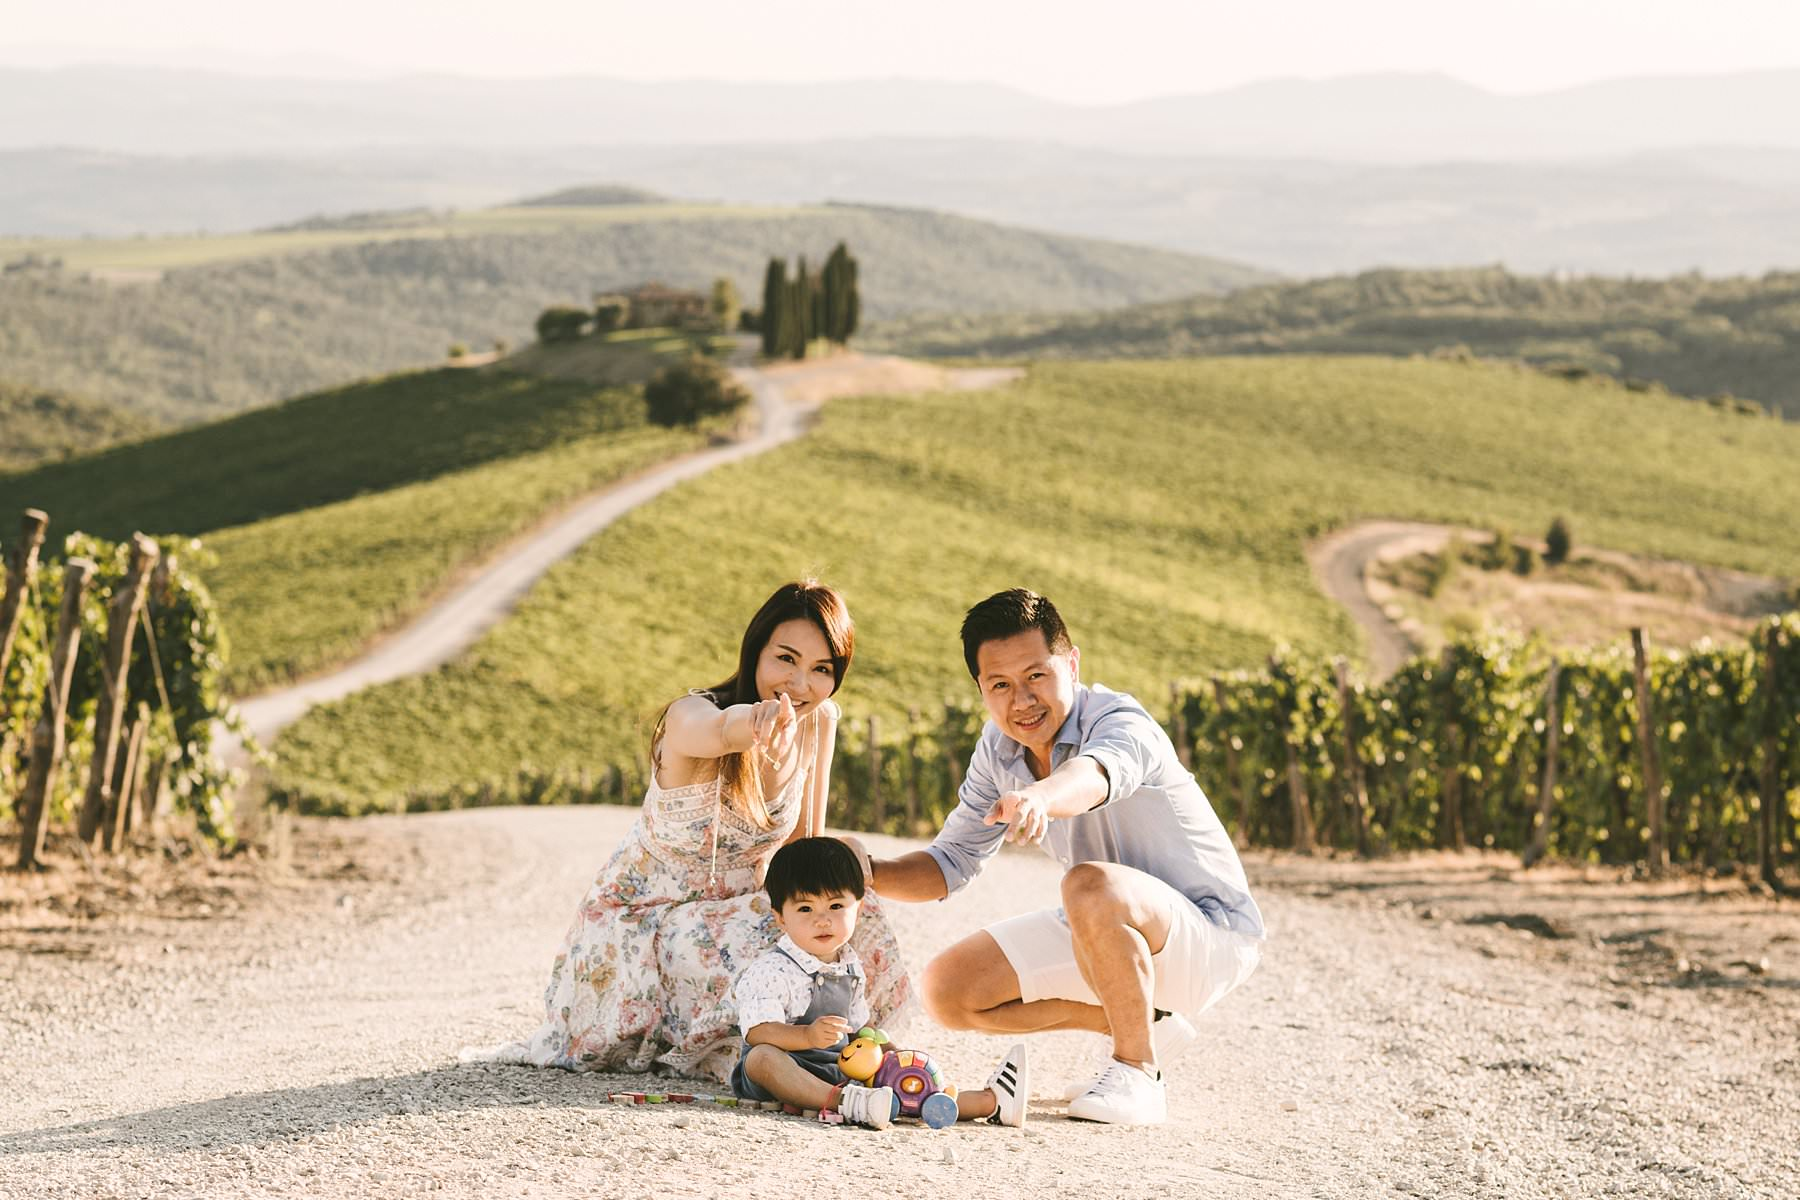 "Sweet family holiday photoshoot in the wonderful Tuscan countryside. Serena and Kelvin, wife and husband from Singapore, chose Tuscany as the destination of a relaxing holiday with their littlest love: their son. Since he was so young, they decided to contact me for a family holiday photoshoot so that the memory of those days would live forever – for all of them. Italy offers a ton of incredibly beautiful places to visit on your next vacation, and Tuscany provides some of the most splendid settings for an emotional family holiday photoshoot. Rosewood Castiglion del Bosco is definitely one of those: with its 5000-acre estate tucked in the heart of Val d'Orcia, this ancient and perfectly preserved hamlet will make you live a one-of-a-kind experience. When I shot Serena and Kelvin's family photos, the owners were so kind to open their private ""Capanna"" vineyard for us. Imagine an endless expanse of rolling hills covered in grapevines, with a white path that guides your gaze to a little, picturesque cypress grove. The warm and golden light of the late afternoon was the finishing touch to a family holiday photoshoot that they will surely cherish forever"